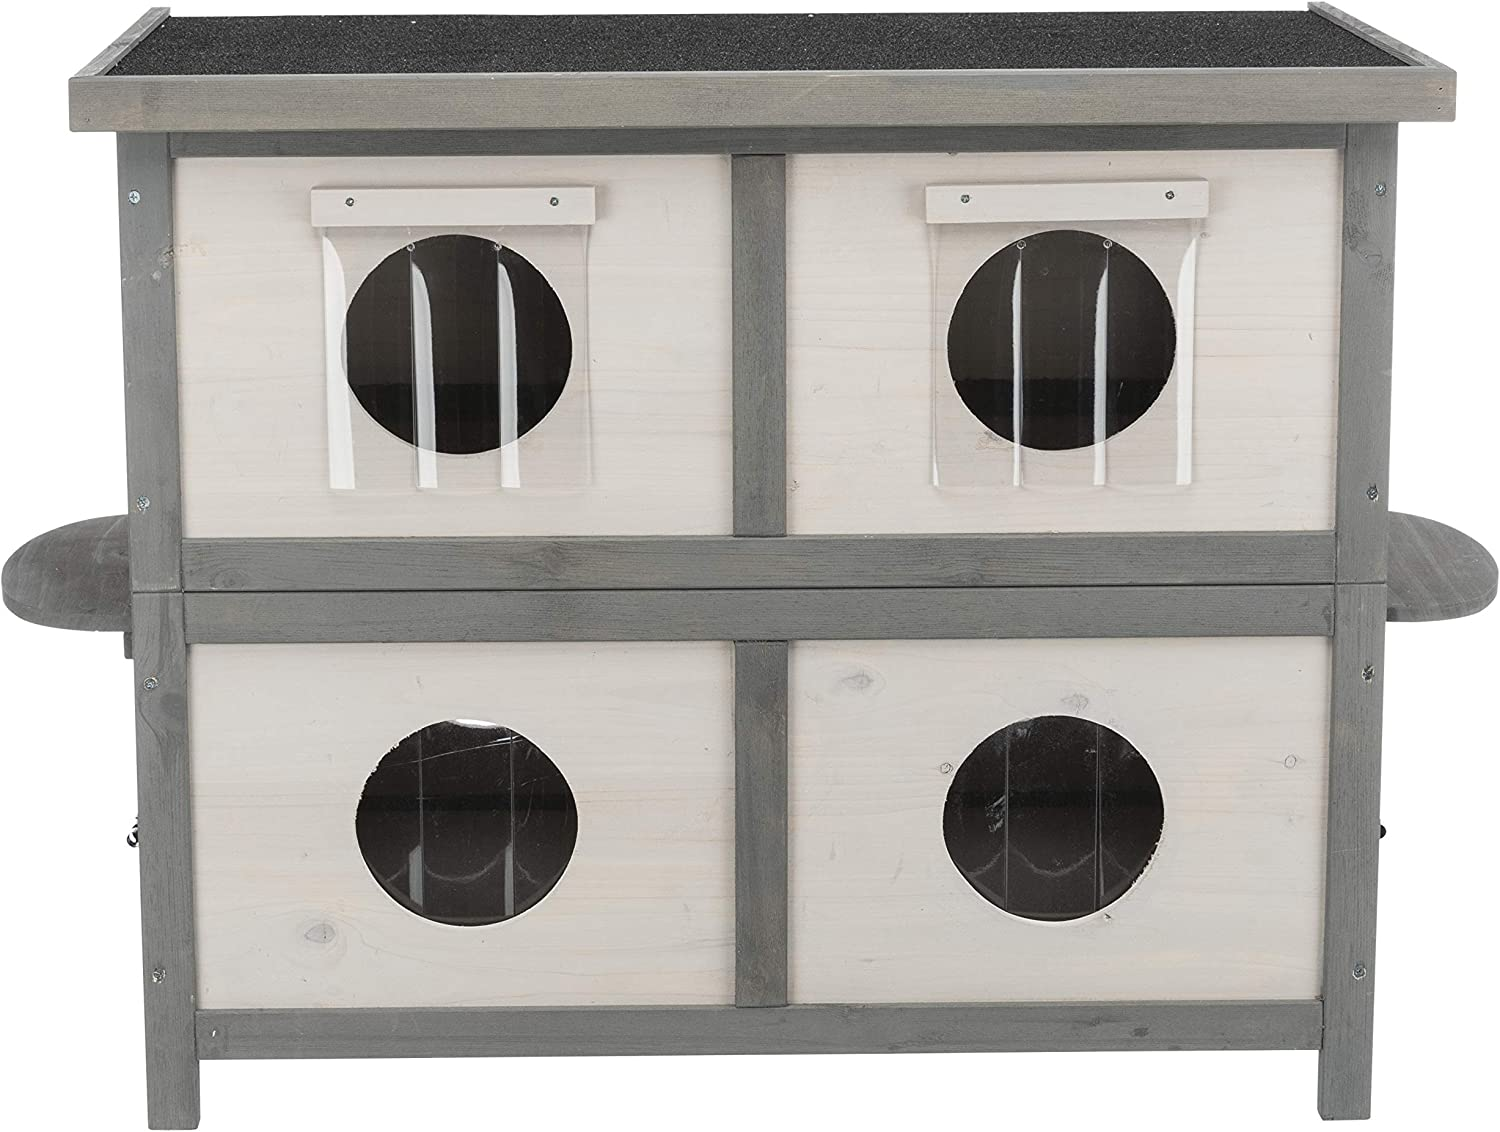 Trixie Natura Cat Home for Multiple Cats, Light Gray/Gray, Model Number: 44117